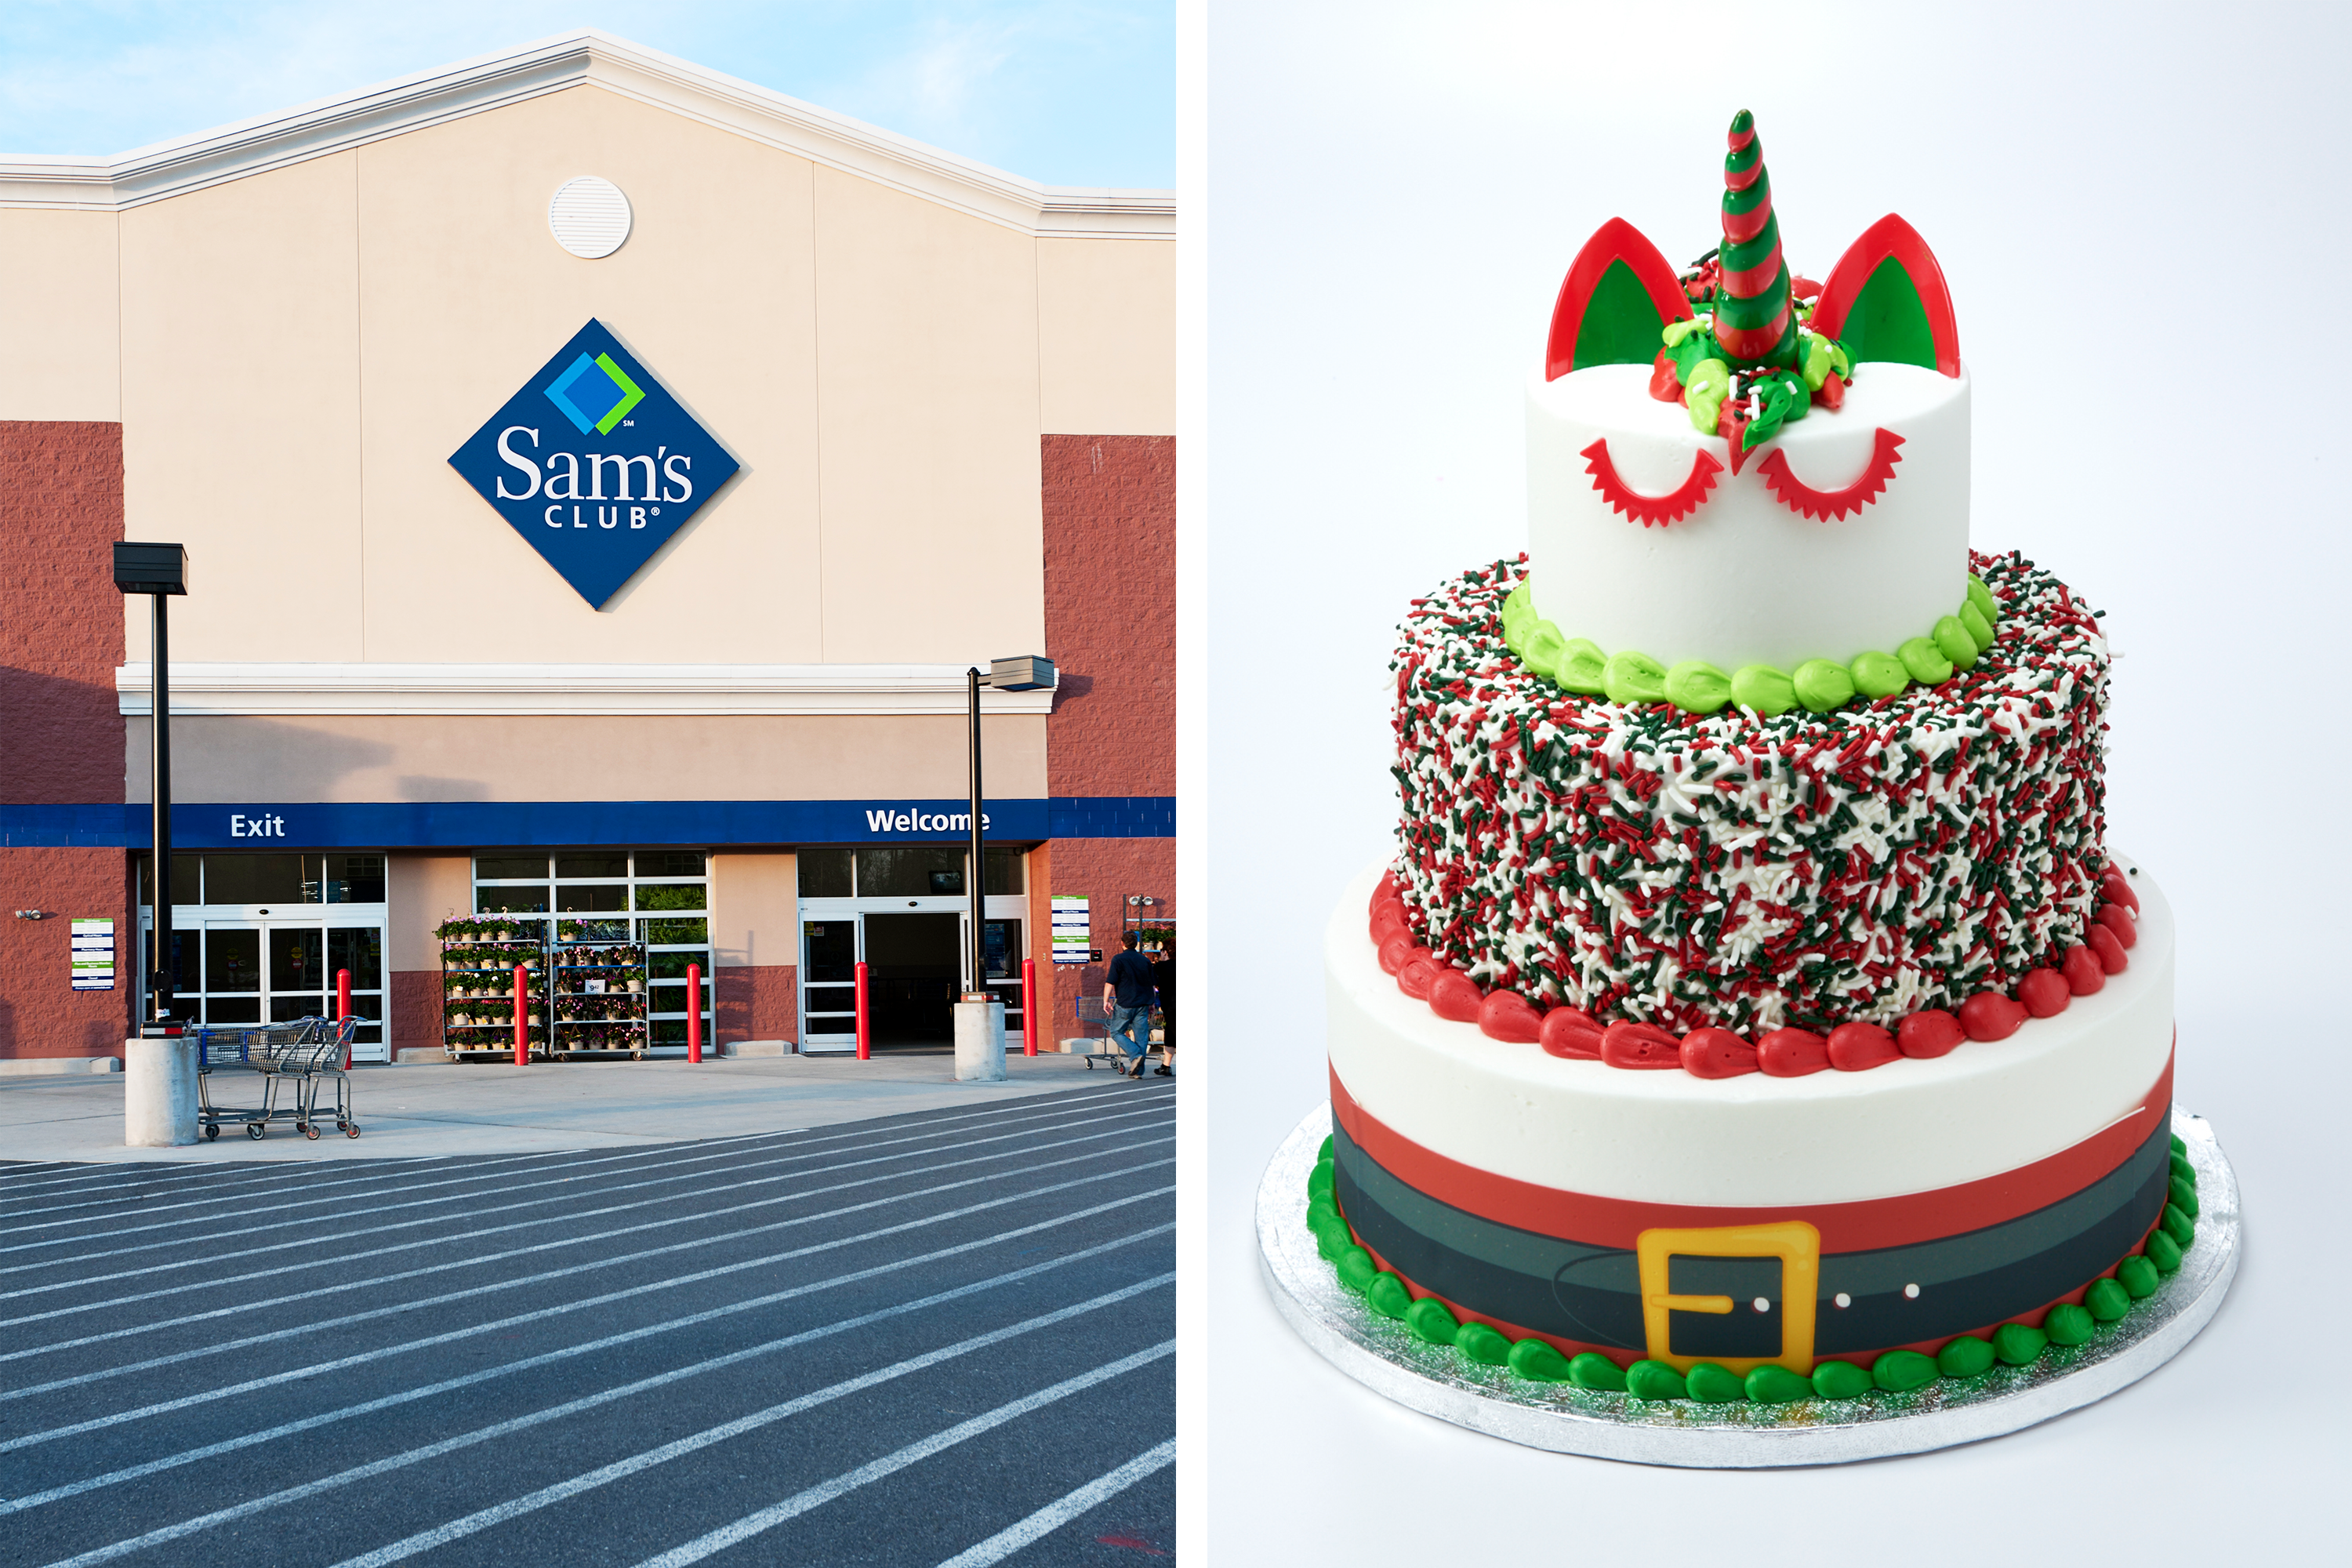 Peachy Of Course Sams Club Has A Santa Unicorn Cake For Sale Kitchn Funny Birthday Cards Online Alyptdamsfinfo